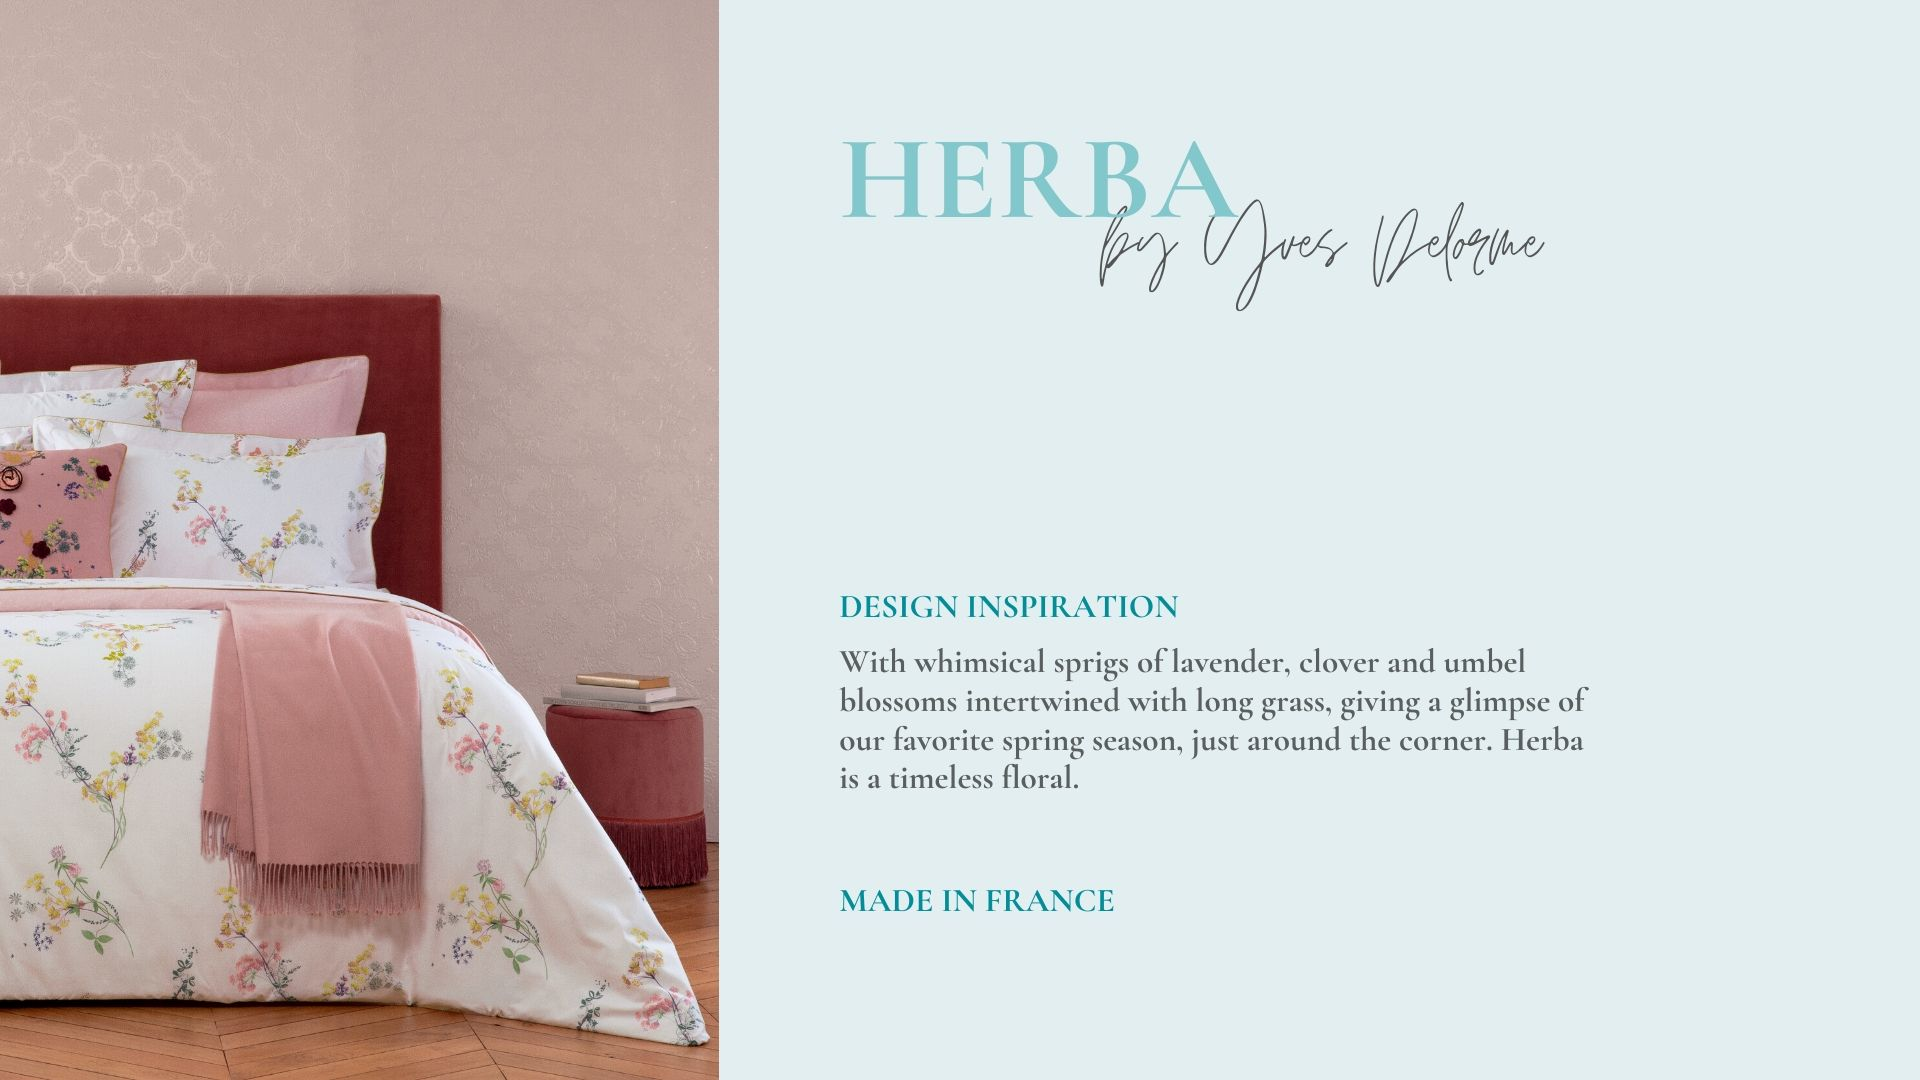 Fine French Floral Bedding by Yves Delorme